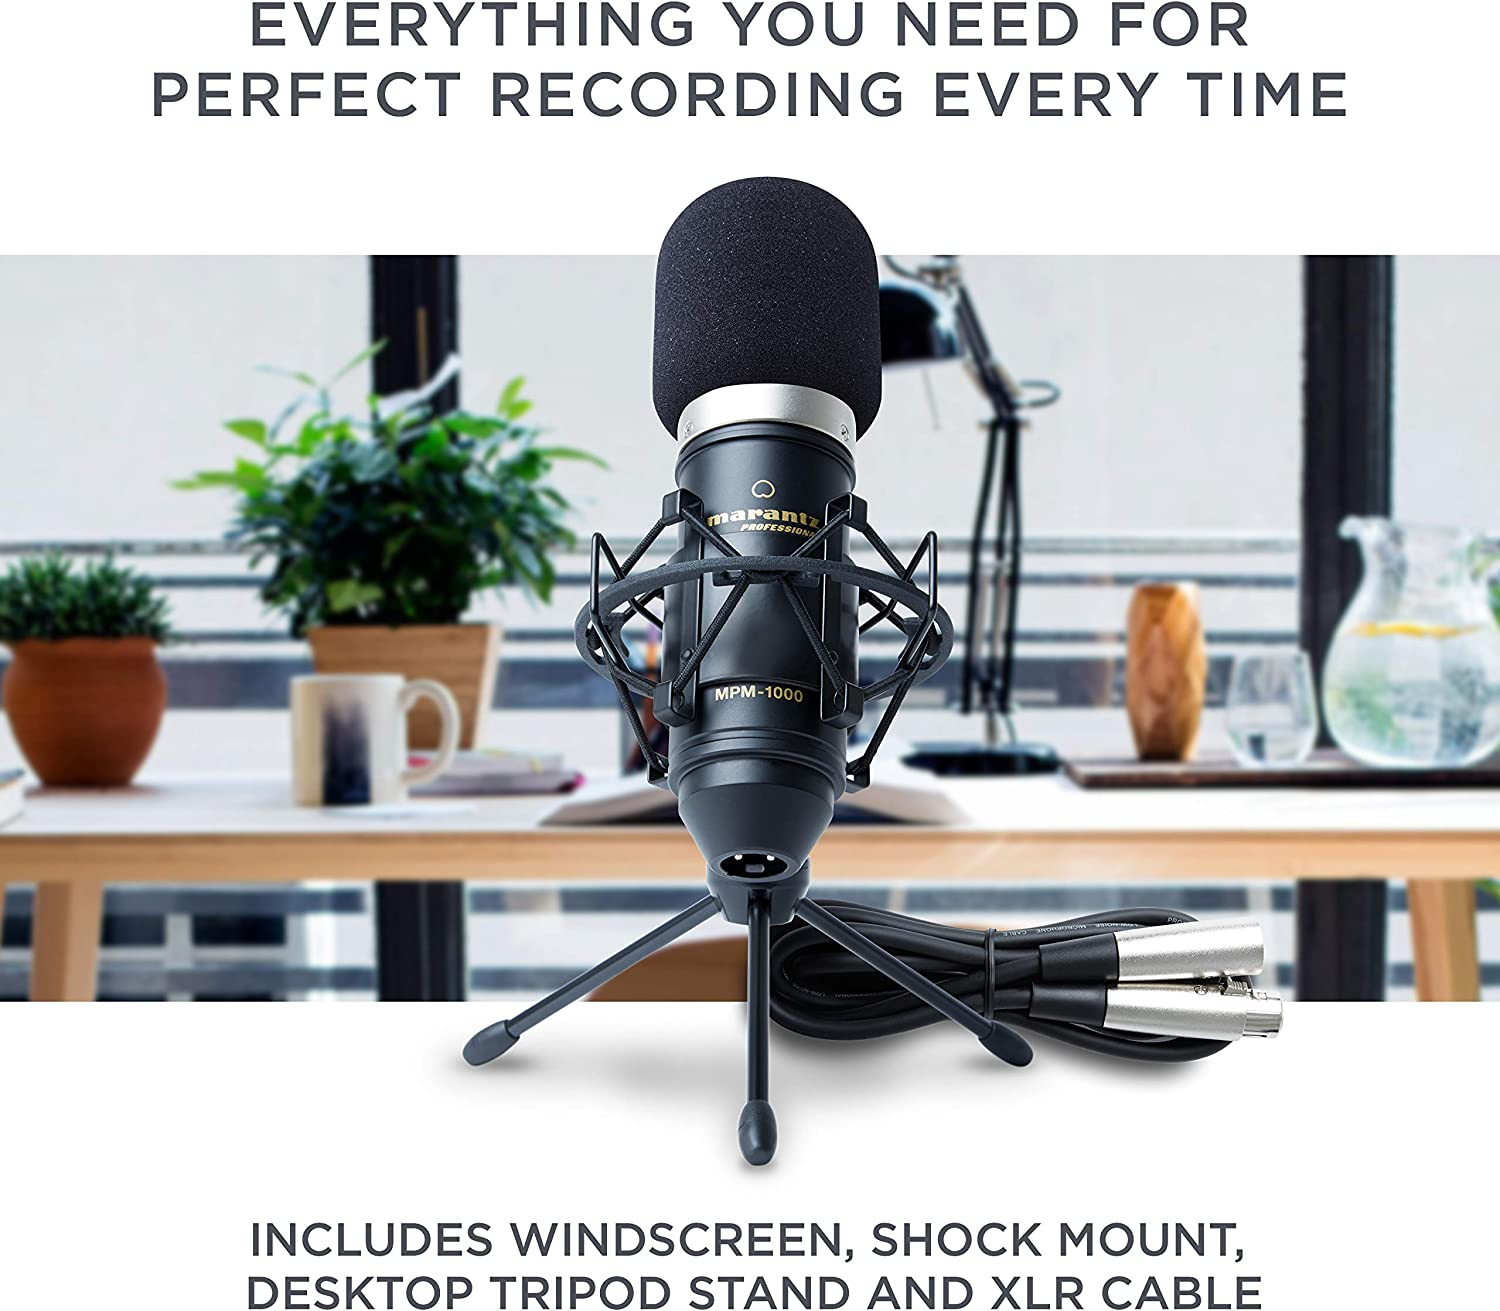 Marantz Pro MPM1000 - Studio Recording Condenser Microphone with Shockmount, Desktop Stand and Cable – Perfect for Podcasting and Voiceover Projects: Musical Instruments